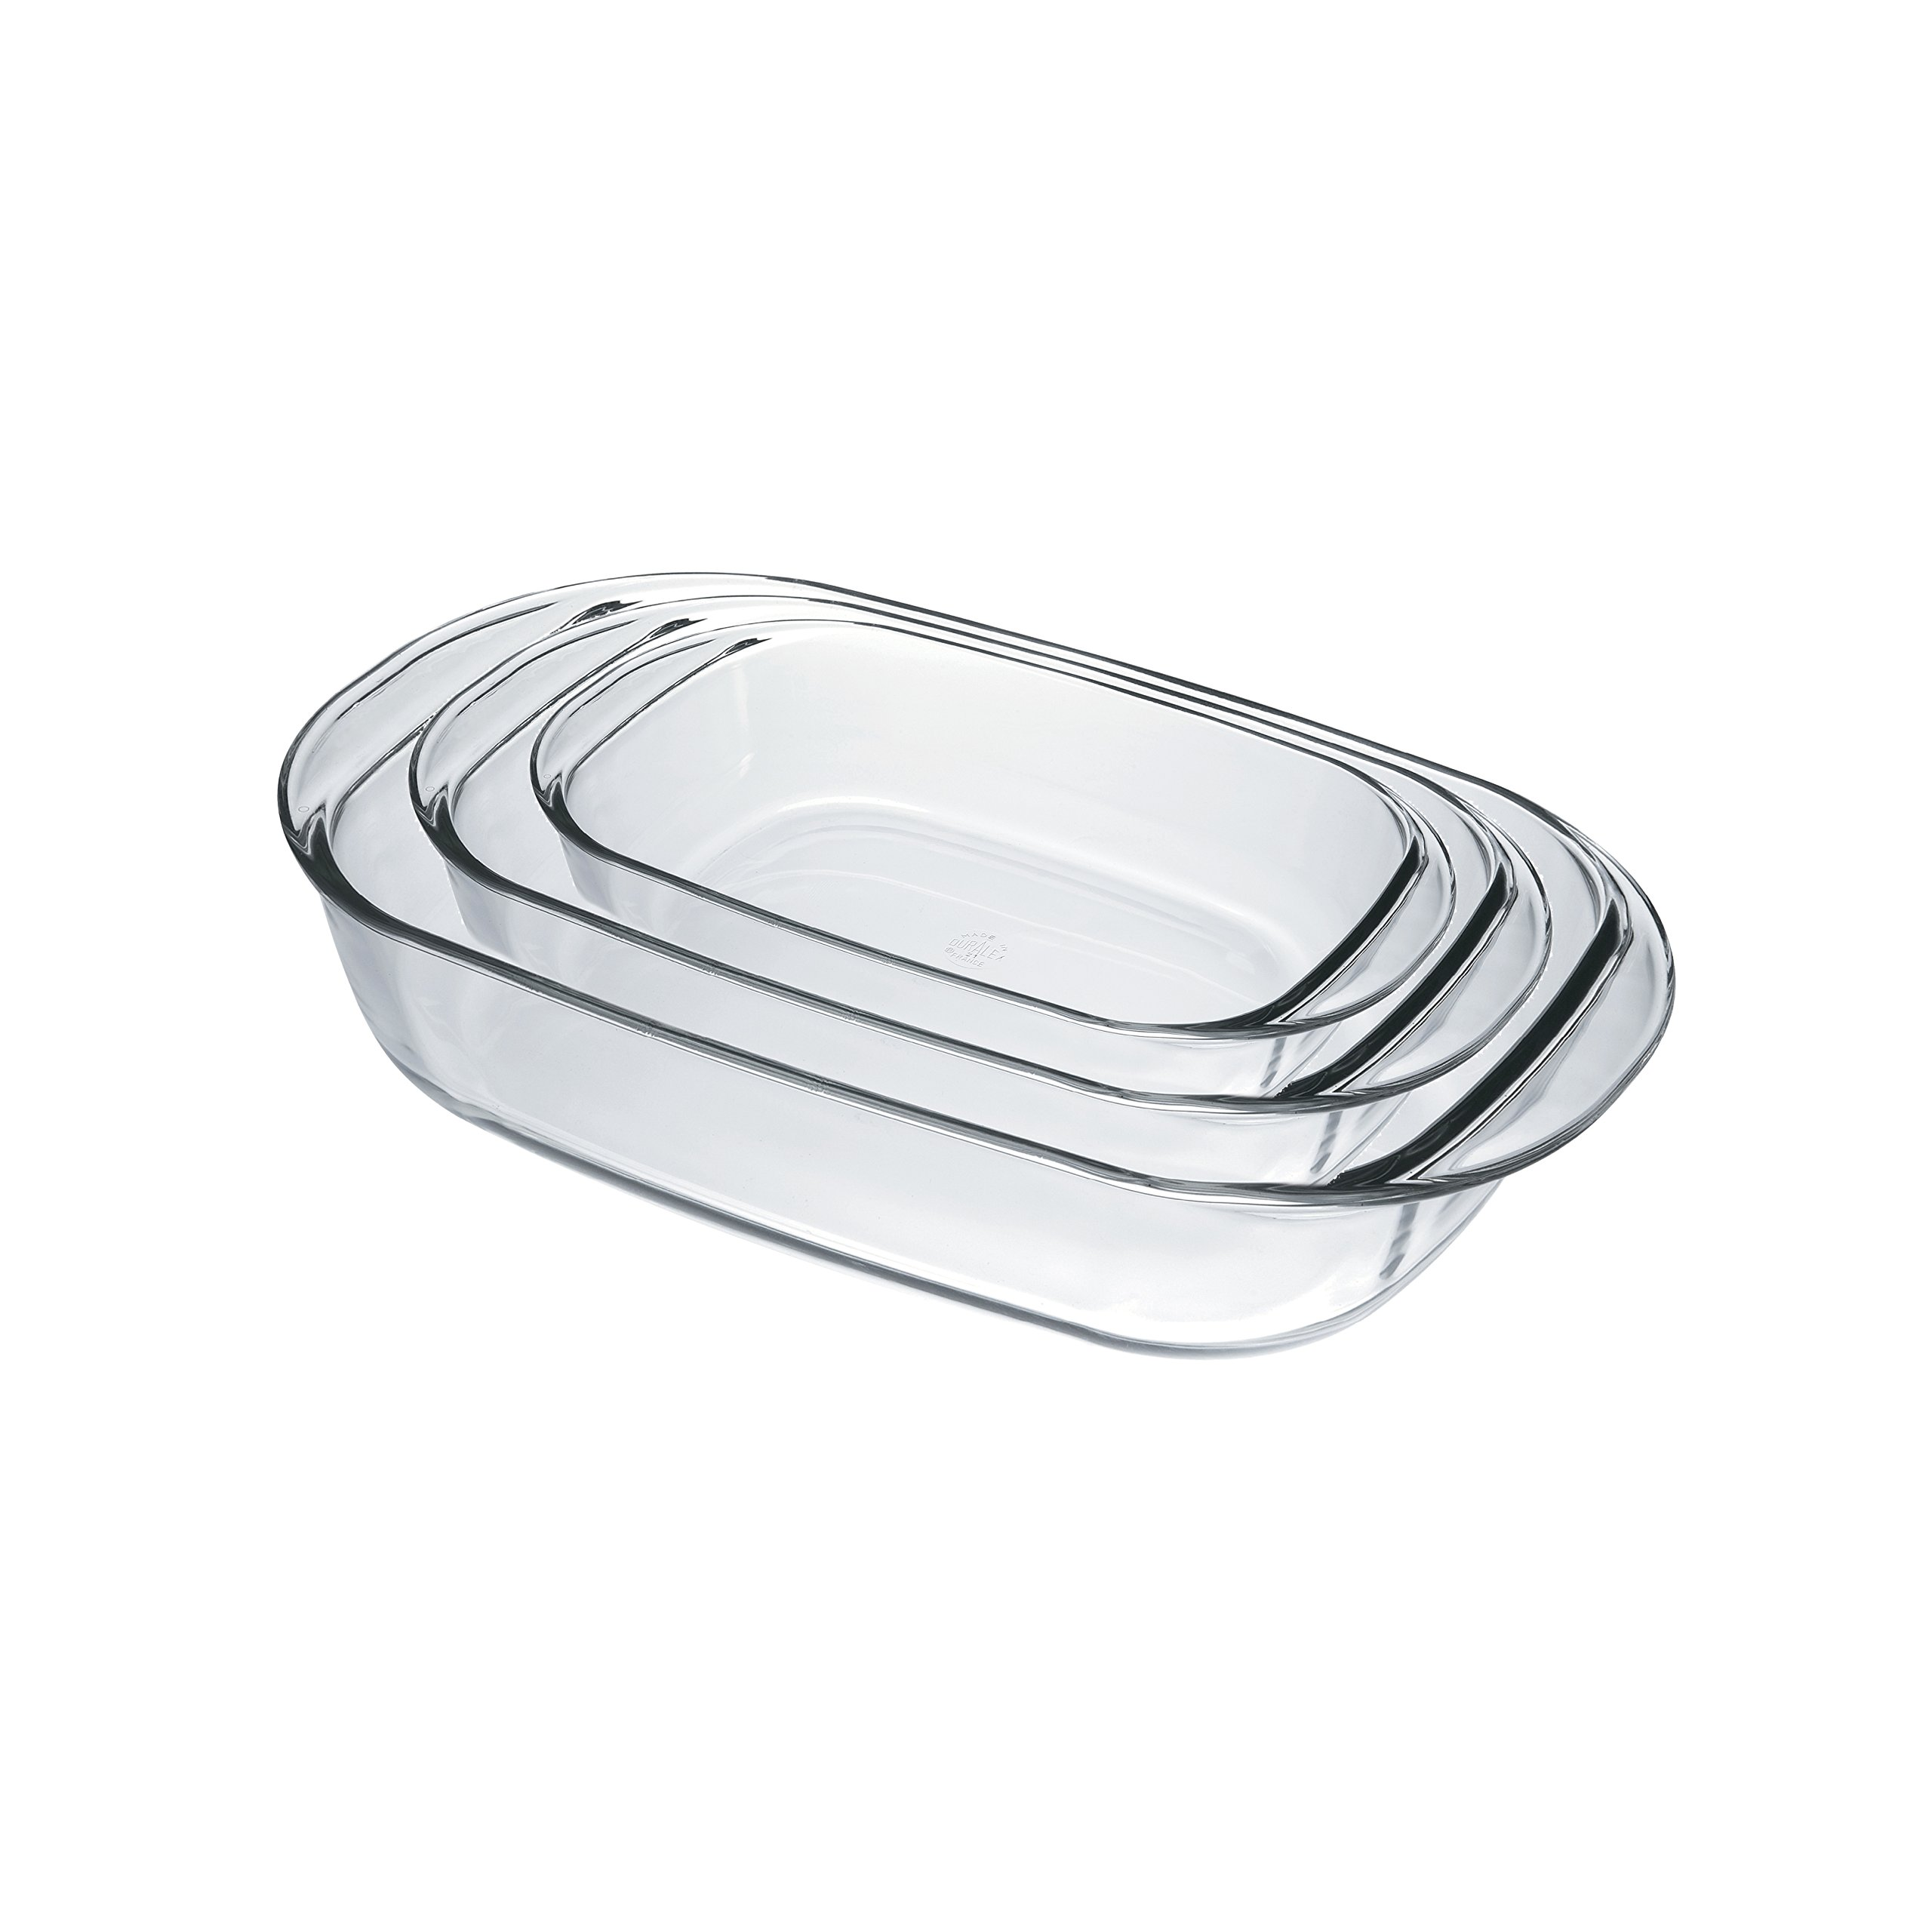 Duralex 9056AS03 Oven Chef Glass Rectangular Baking Dishes/Roasters Set of 3 by Duralex